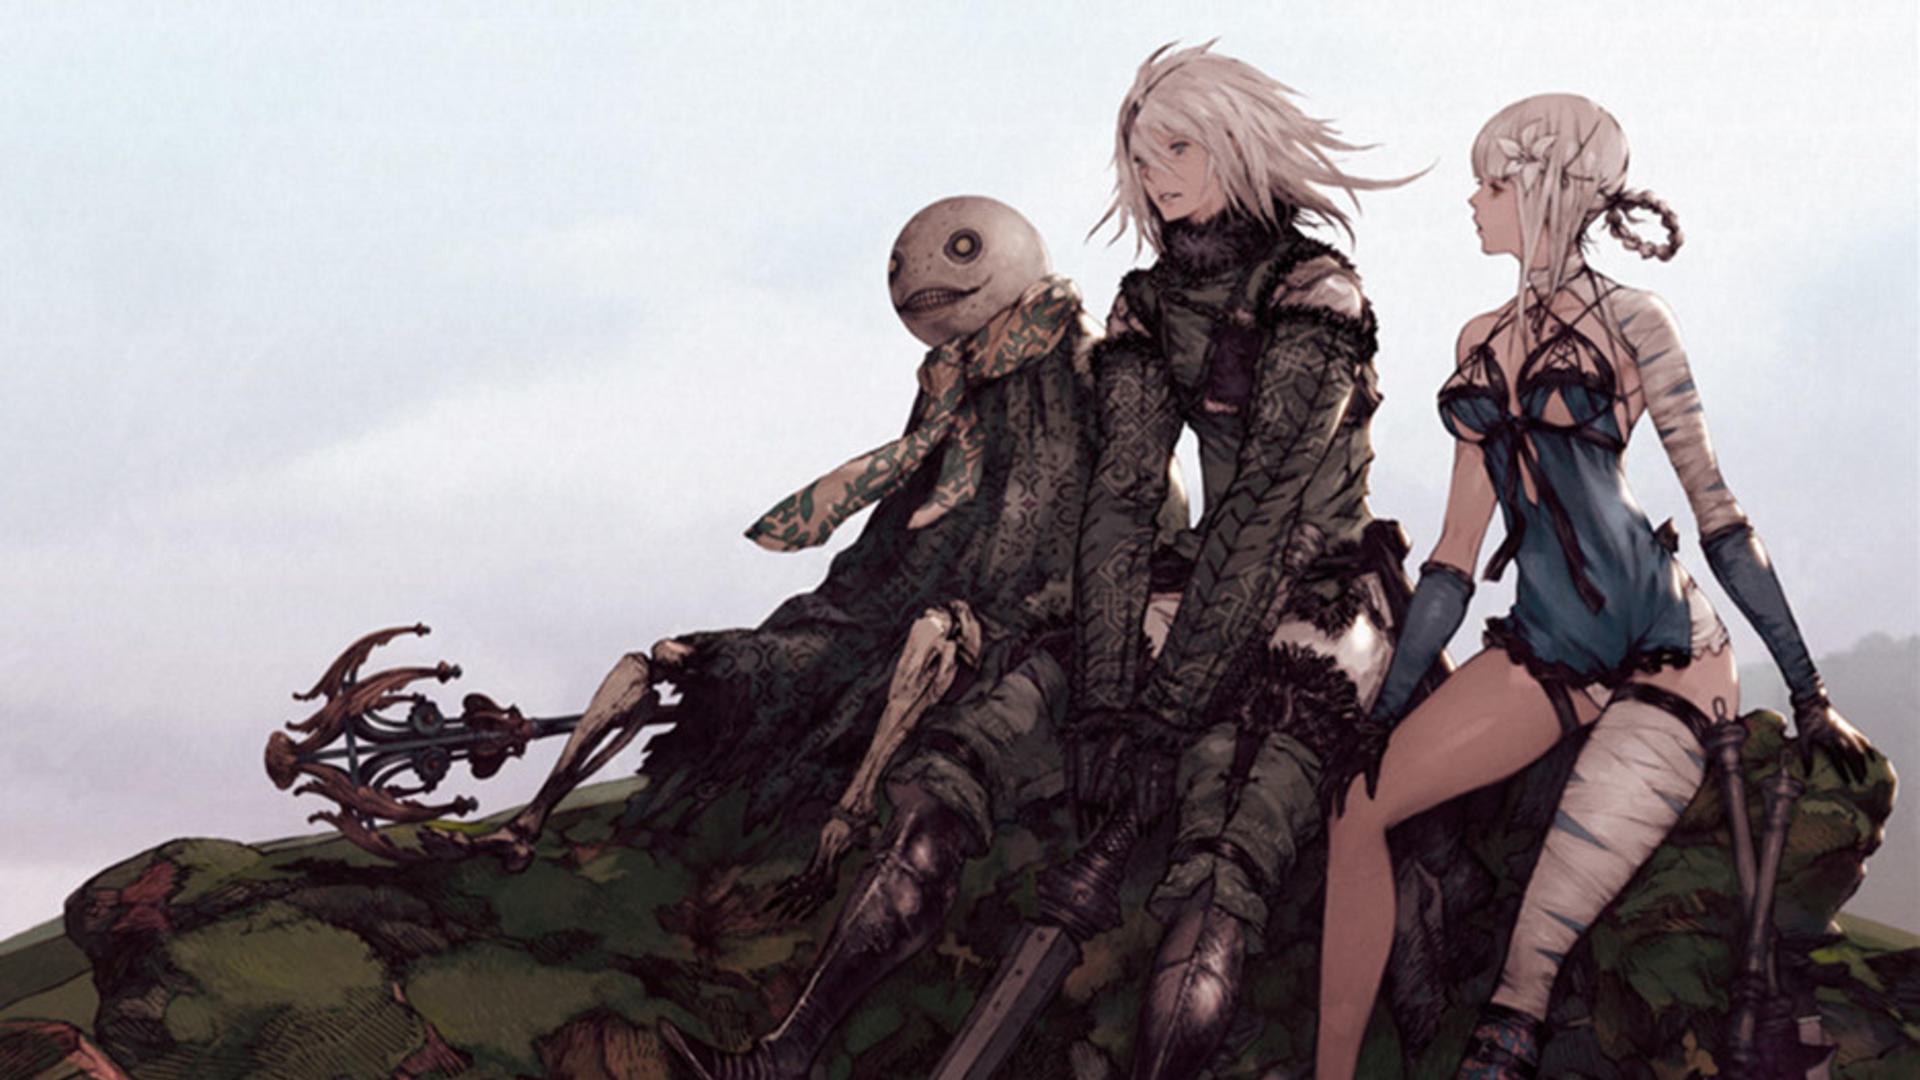 NieR Replicant v.1.22: trailer del gameplay